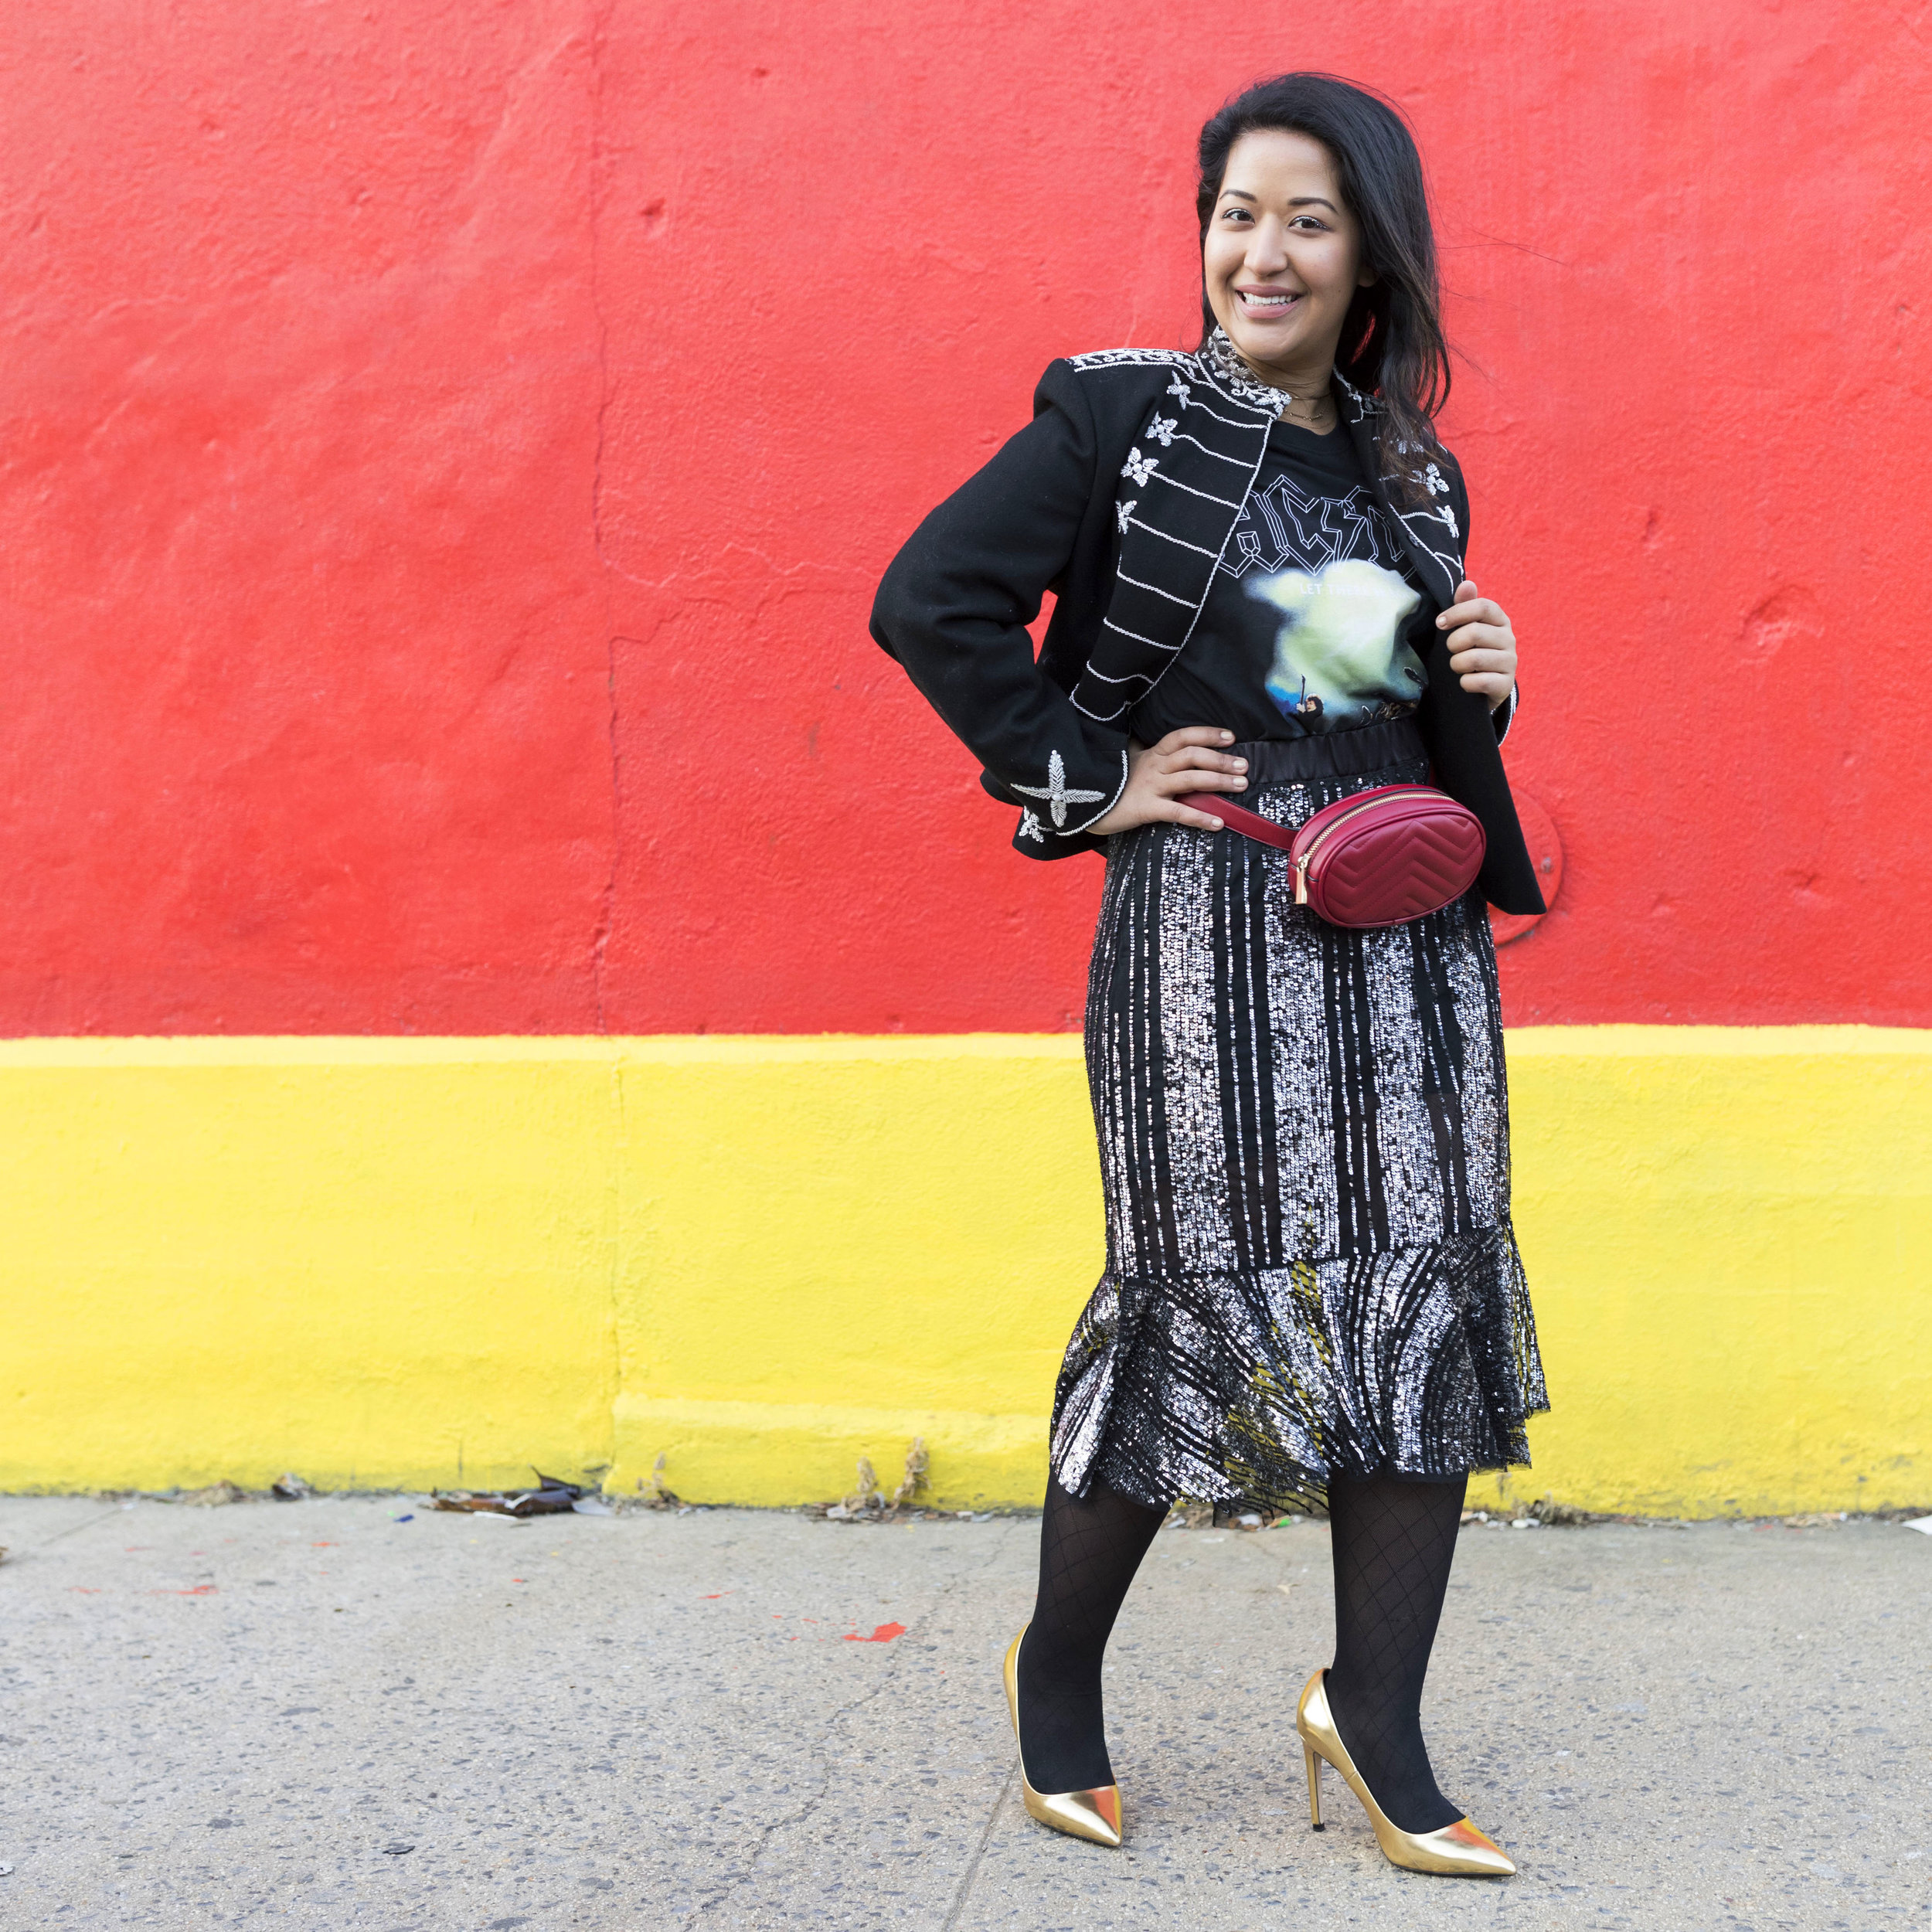 Krity S How to wear a fanny pack belt bag